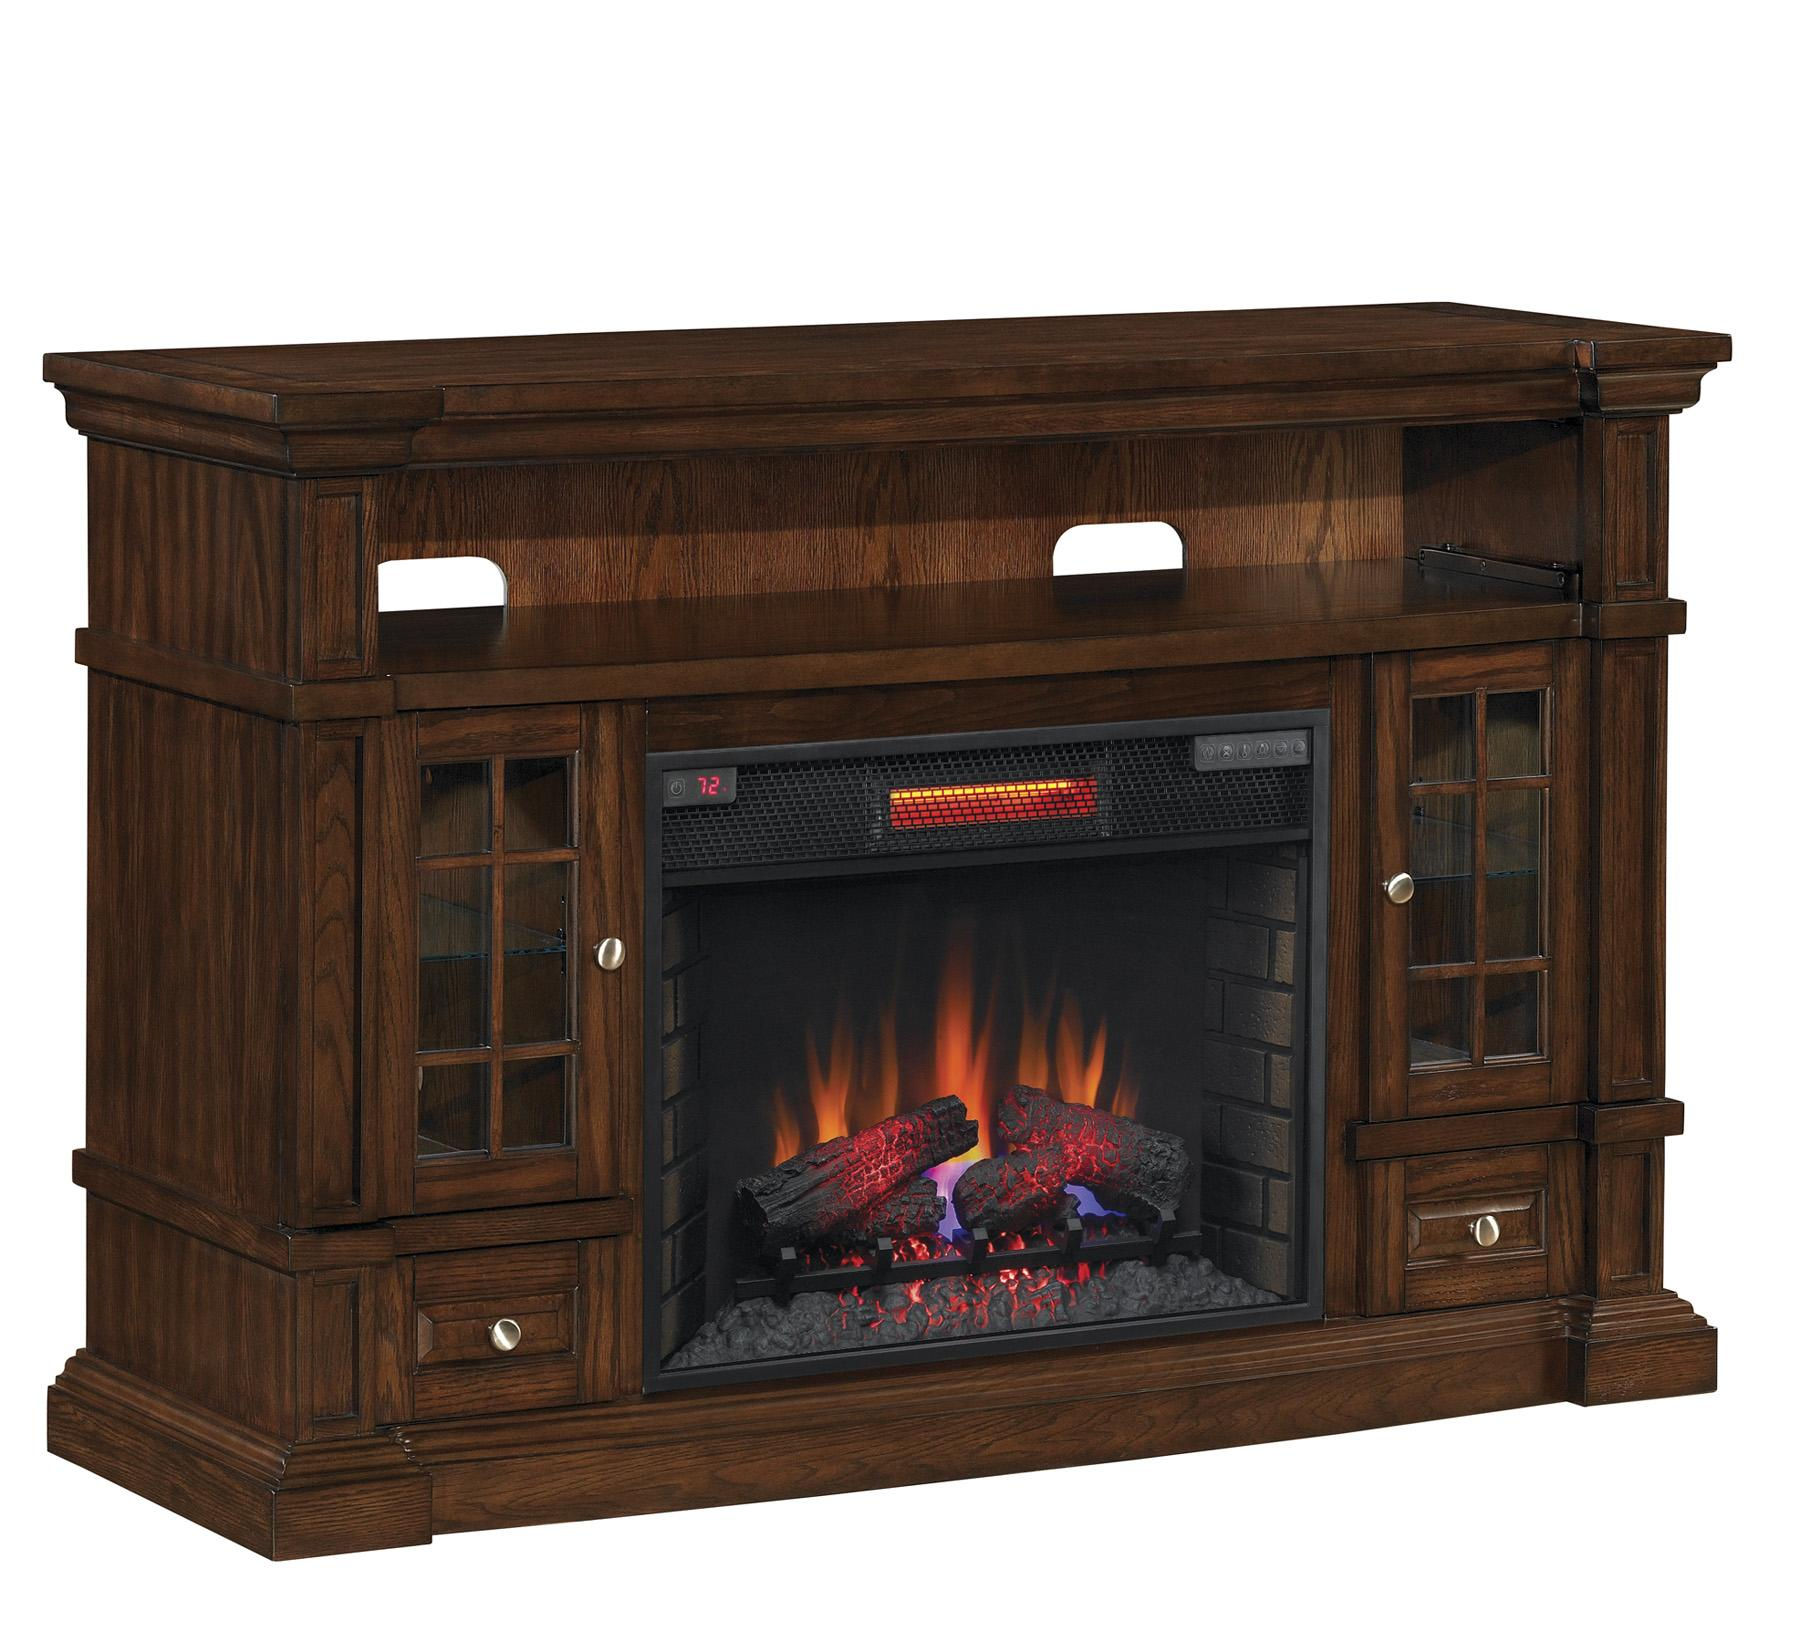 Classicflame 28mm6240 O128 Belmont Tv Stand For Tvs Up To 65 Caramel Oak